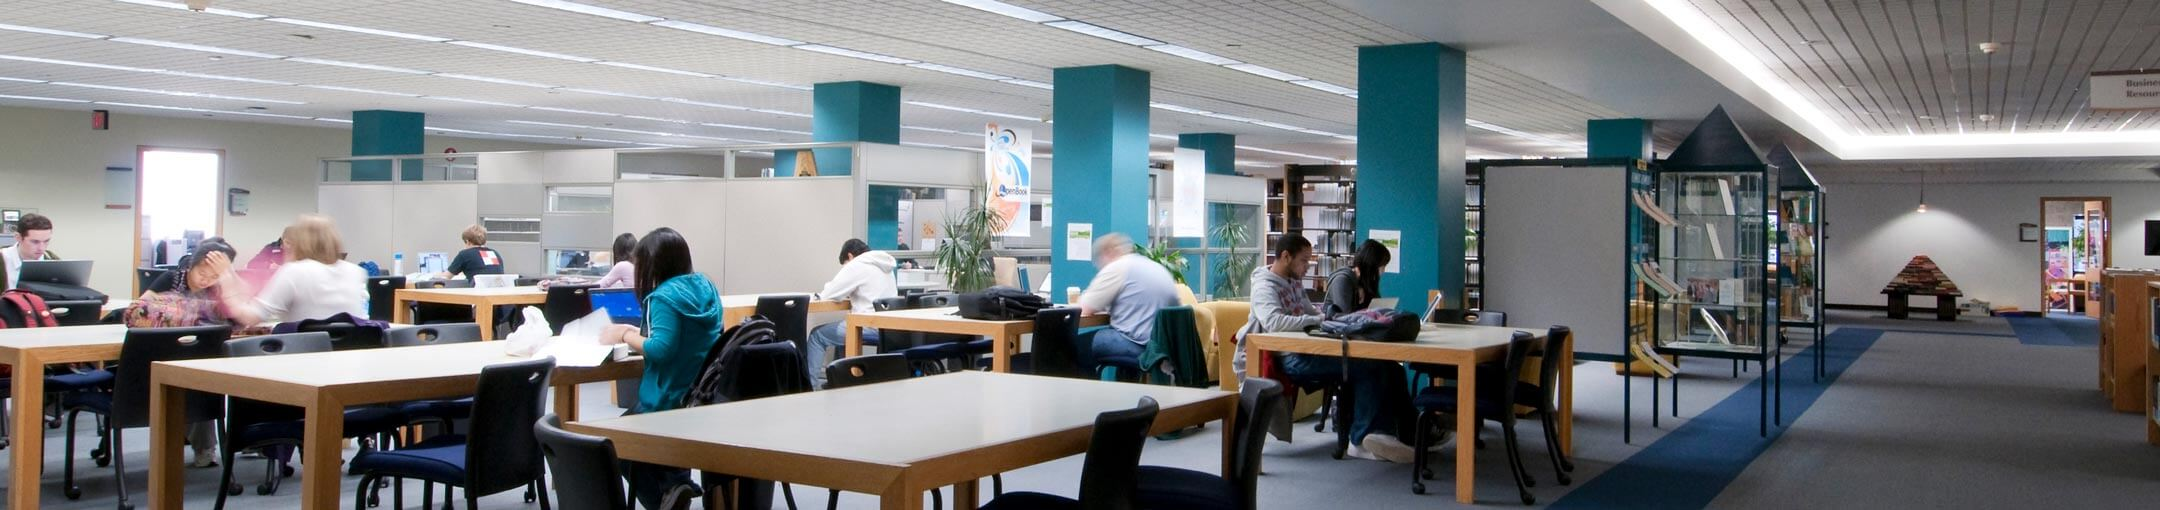 Students studying and working on projects in the library